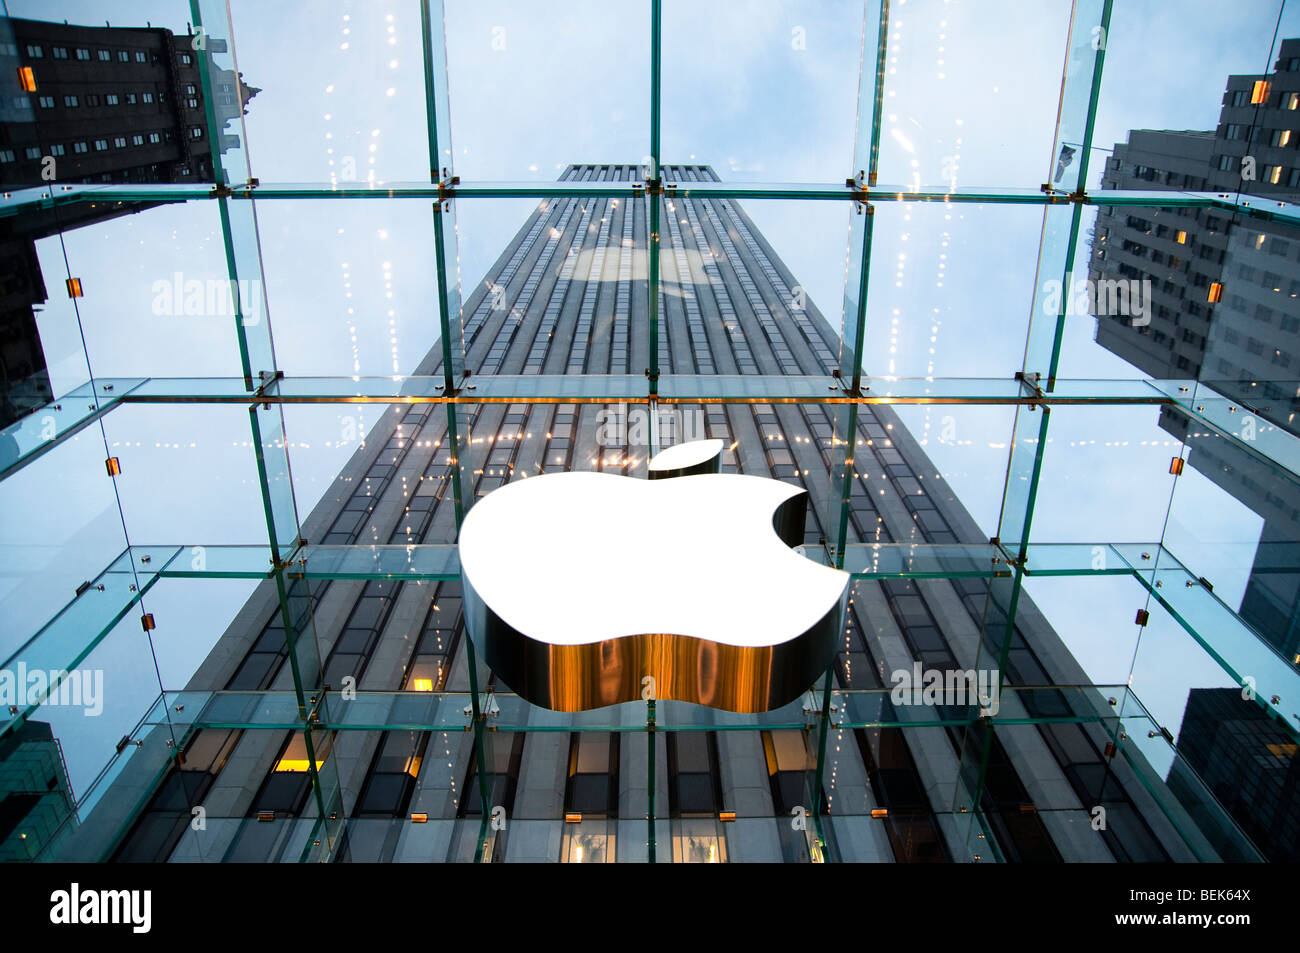 View Inside Apple Store on 5th Avenue in New York City, NY USA Stock Photo